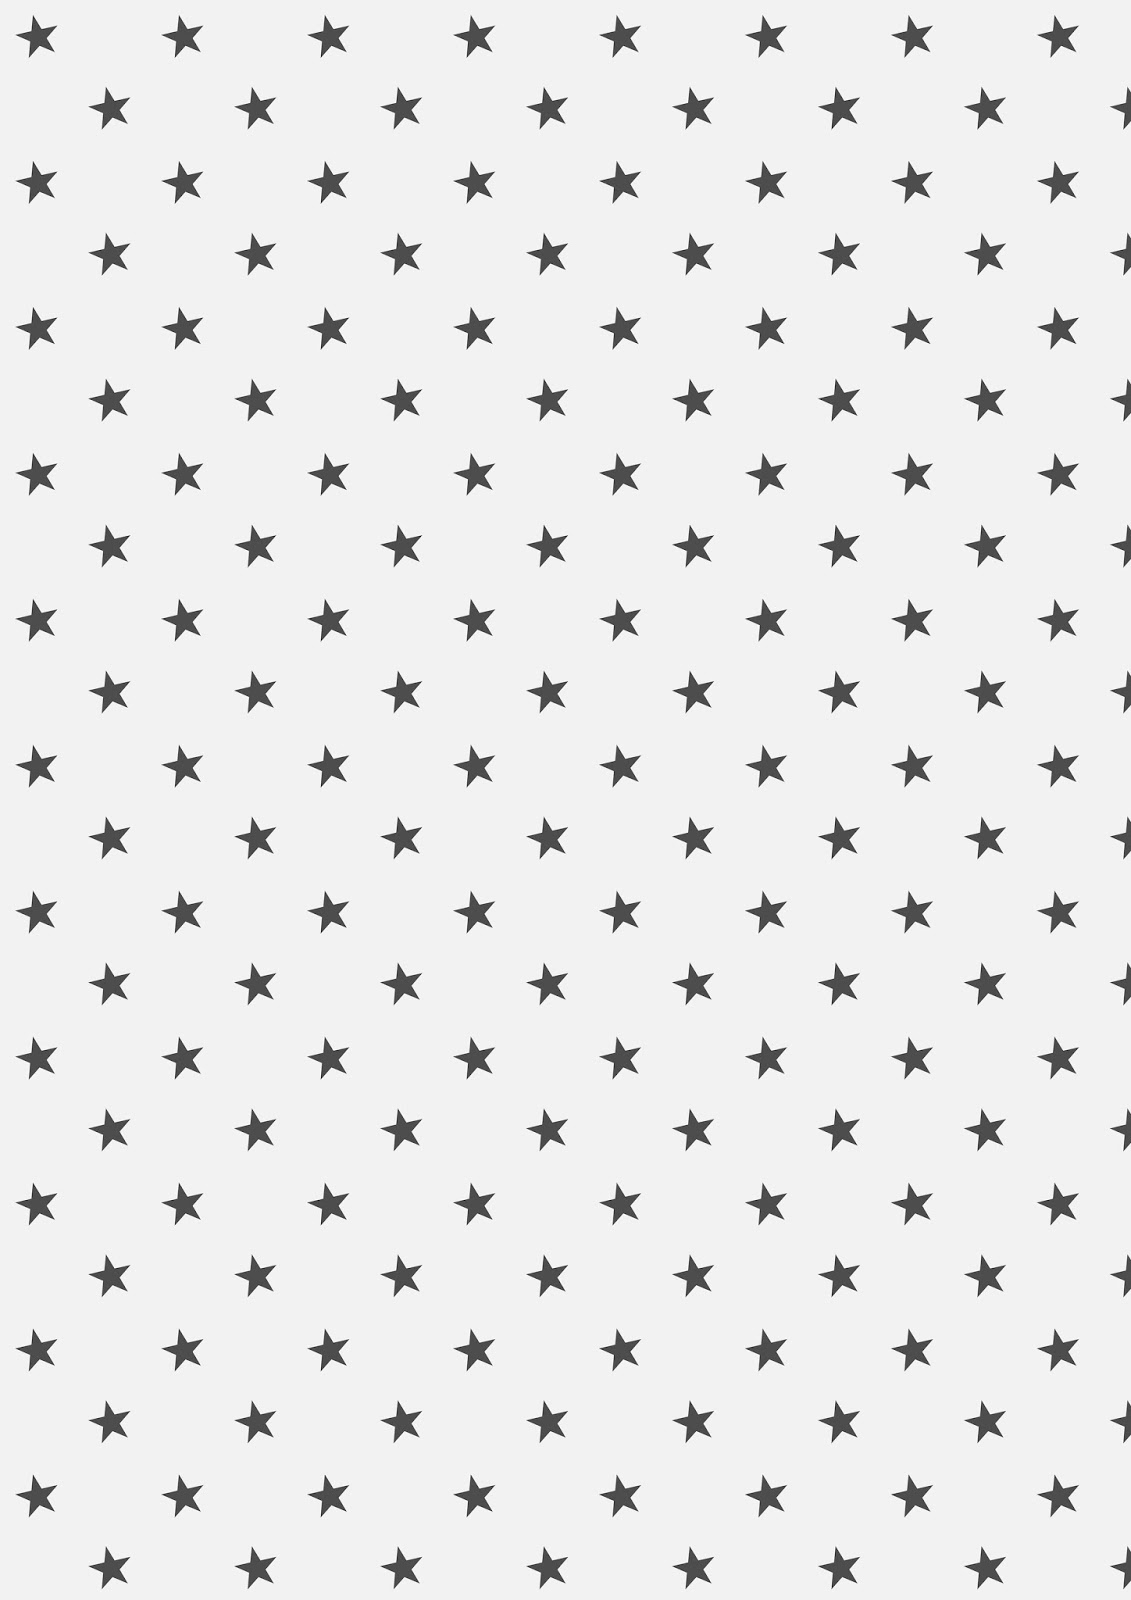 Free Printable Gift Wrapping Paper – Classy Grey Gift Wrap Paper - Free Printable Wrapping Paper Patterns